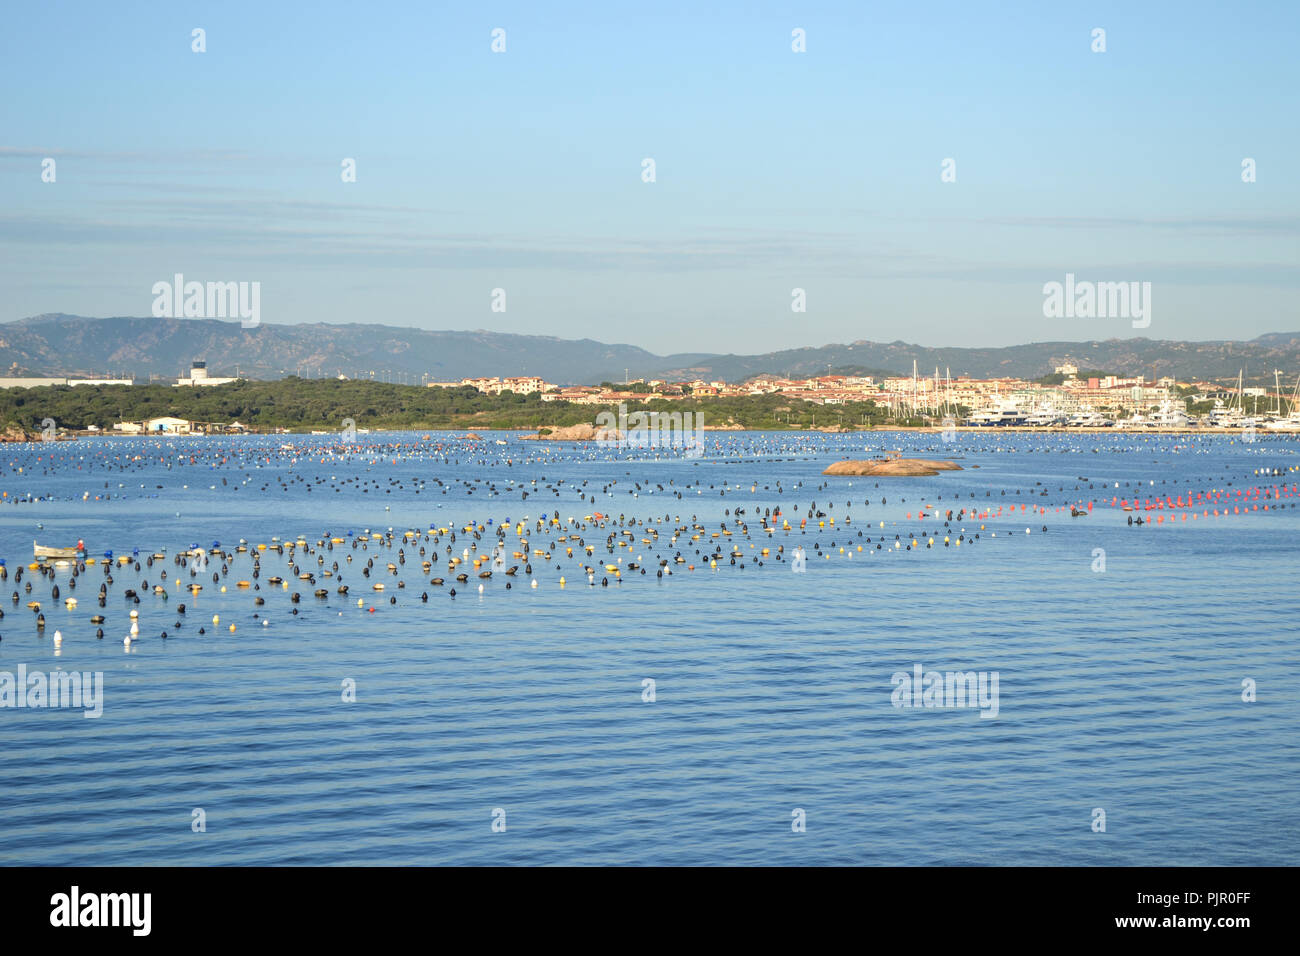 View to Olbia harbor from cruise ship, Sardinia island - Stock Image